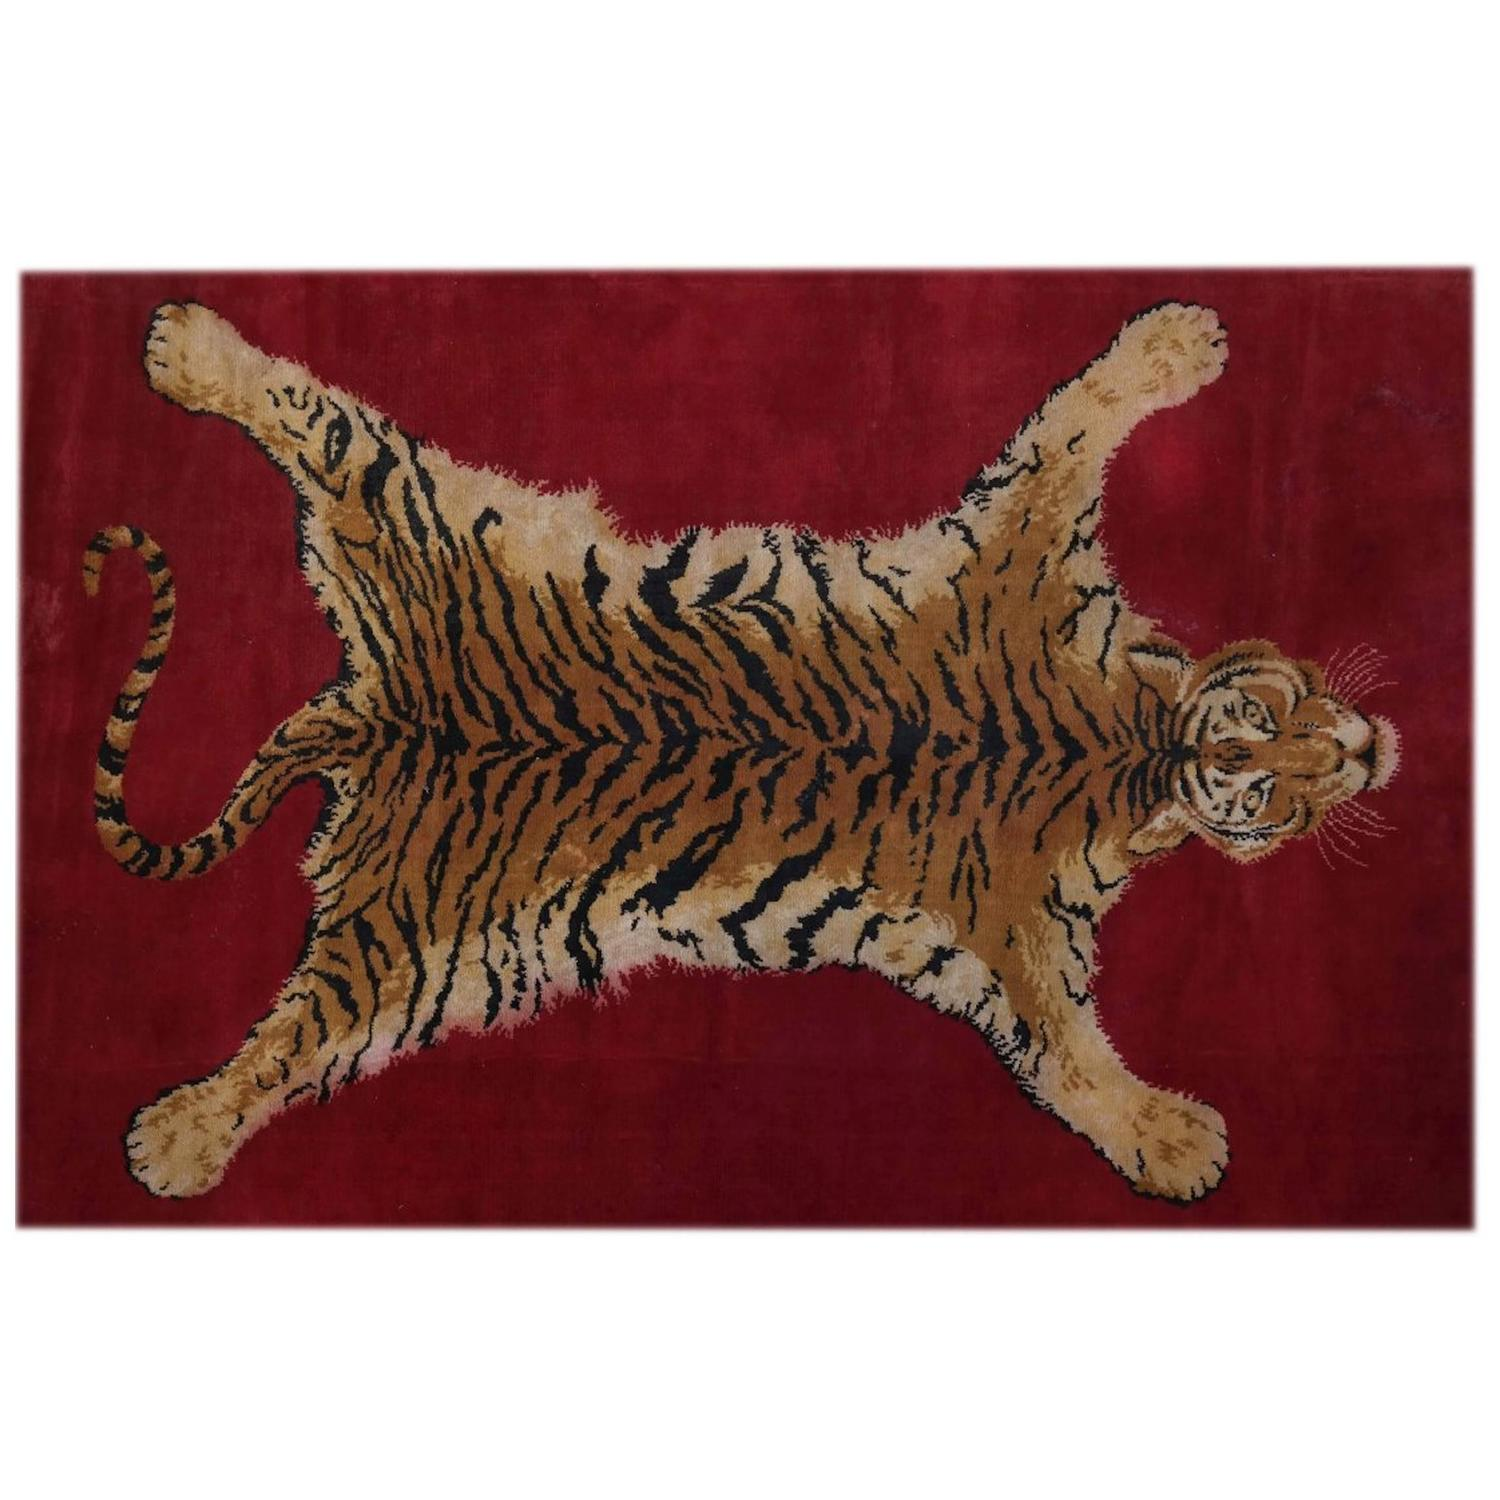 Sprawled Tiger Rug, Belgium, Circa 1970 At 1stdibs